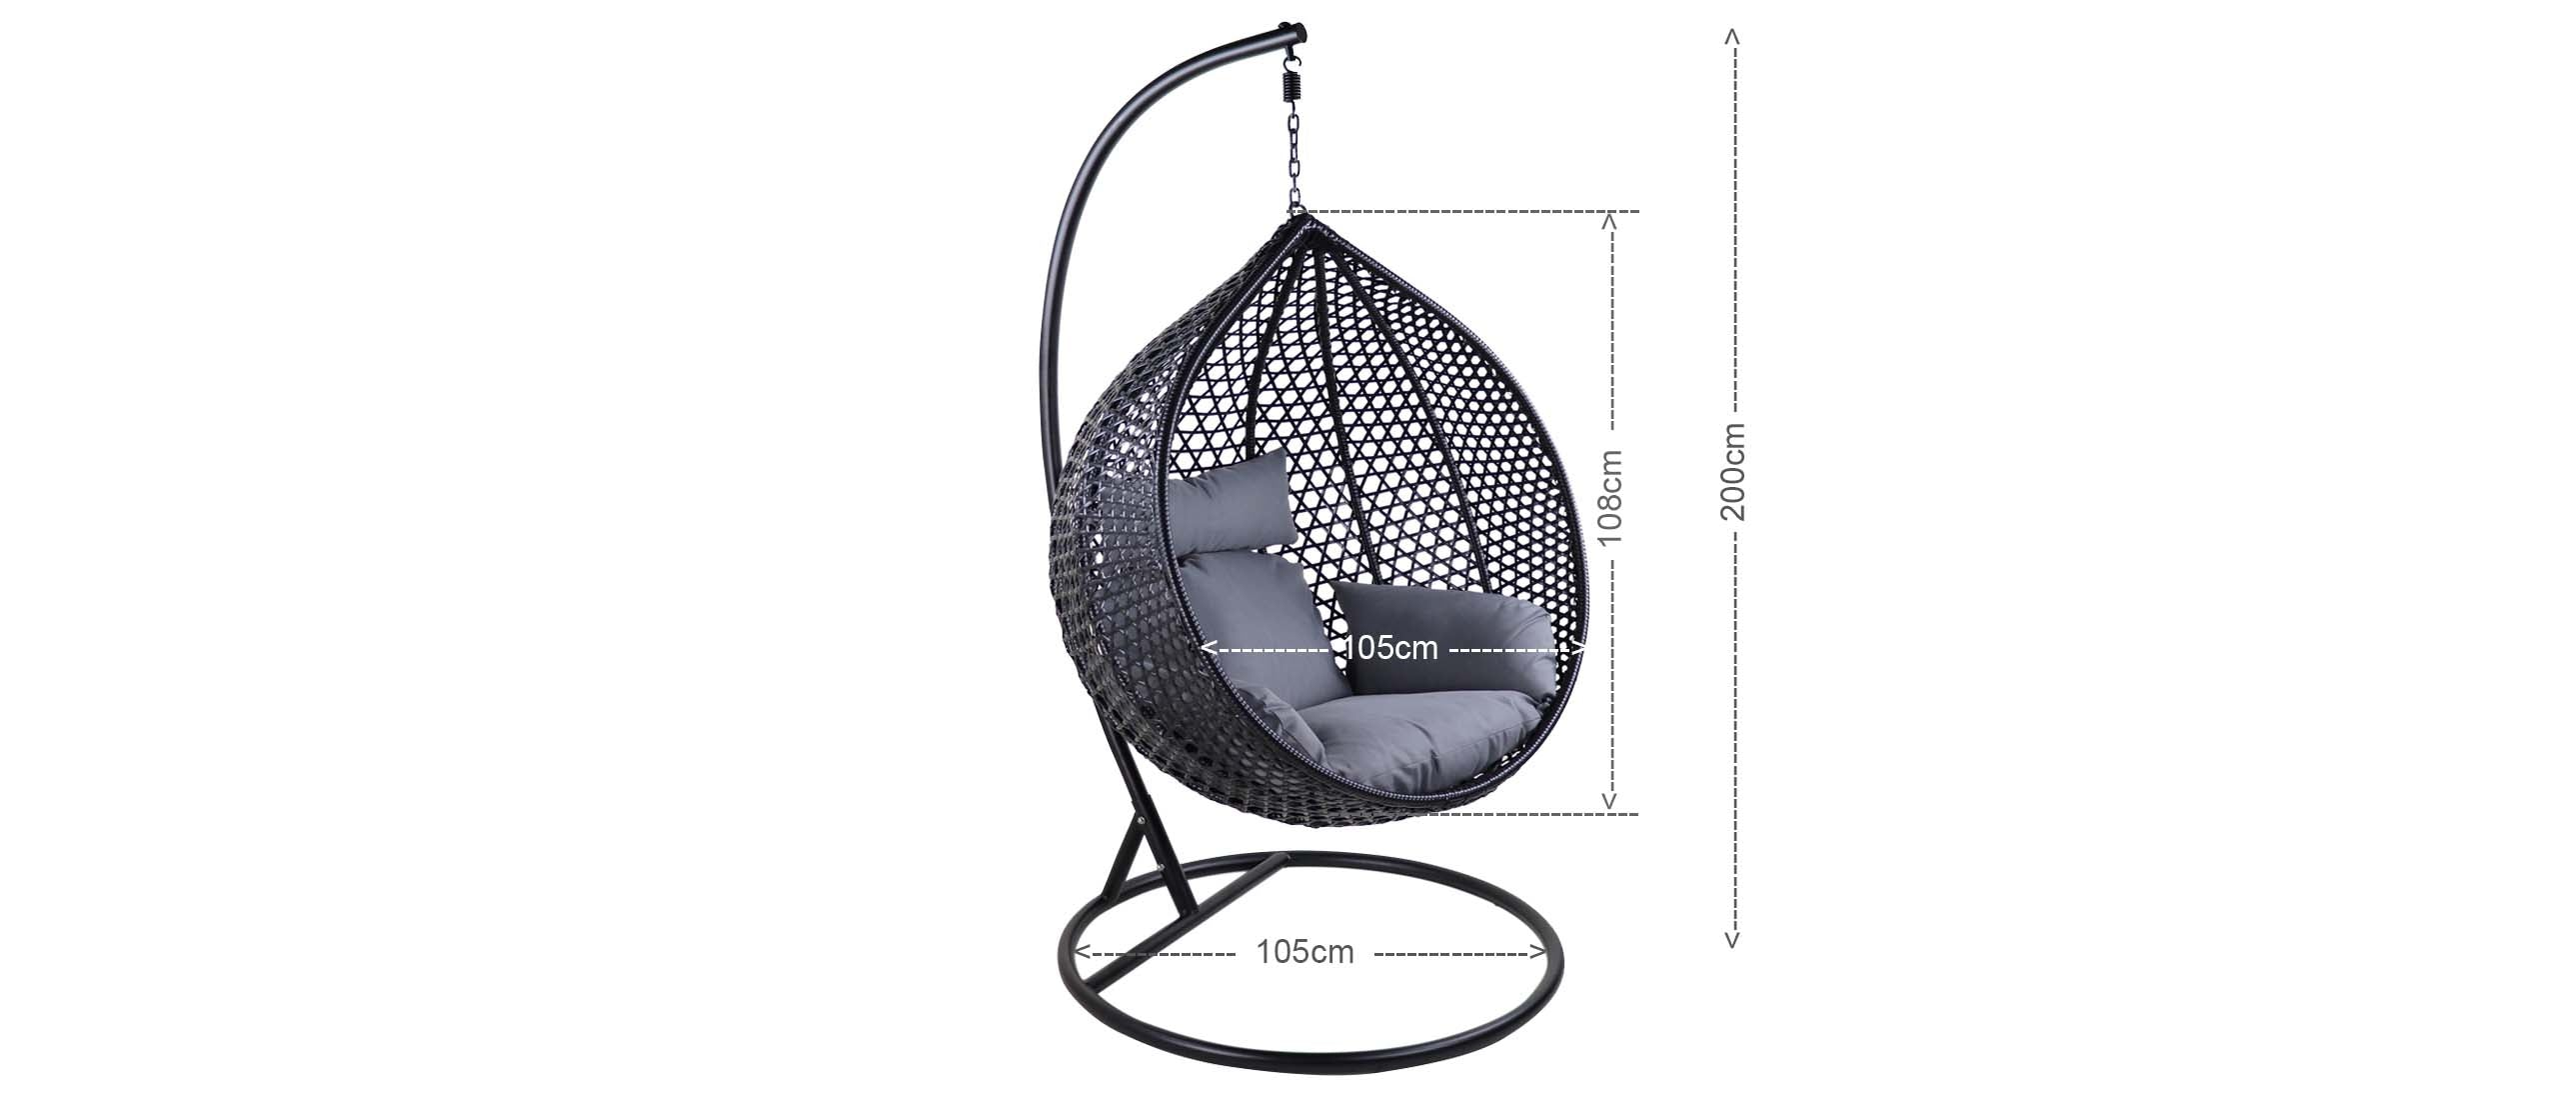 Catania Cocoon Swing Chair Grey Cushion (OPEN BOX)